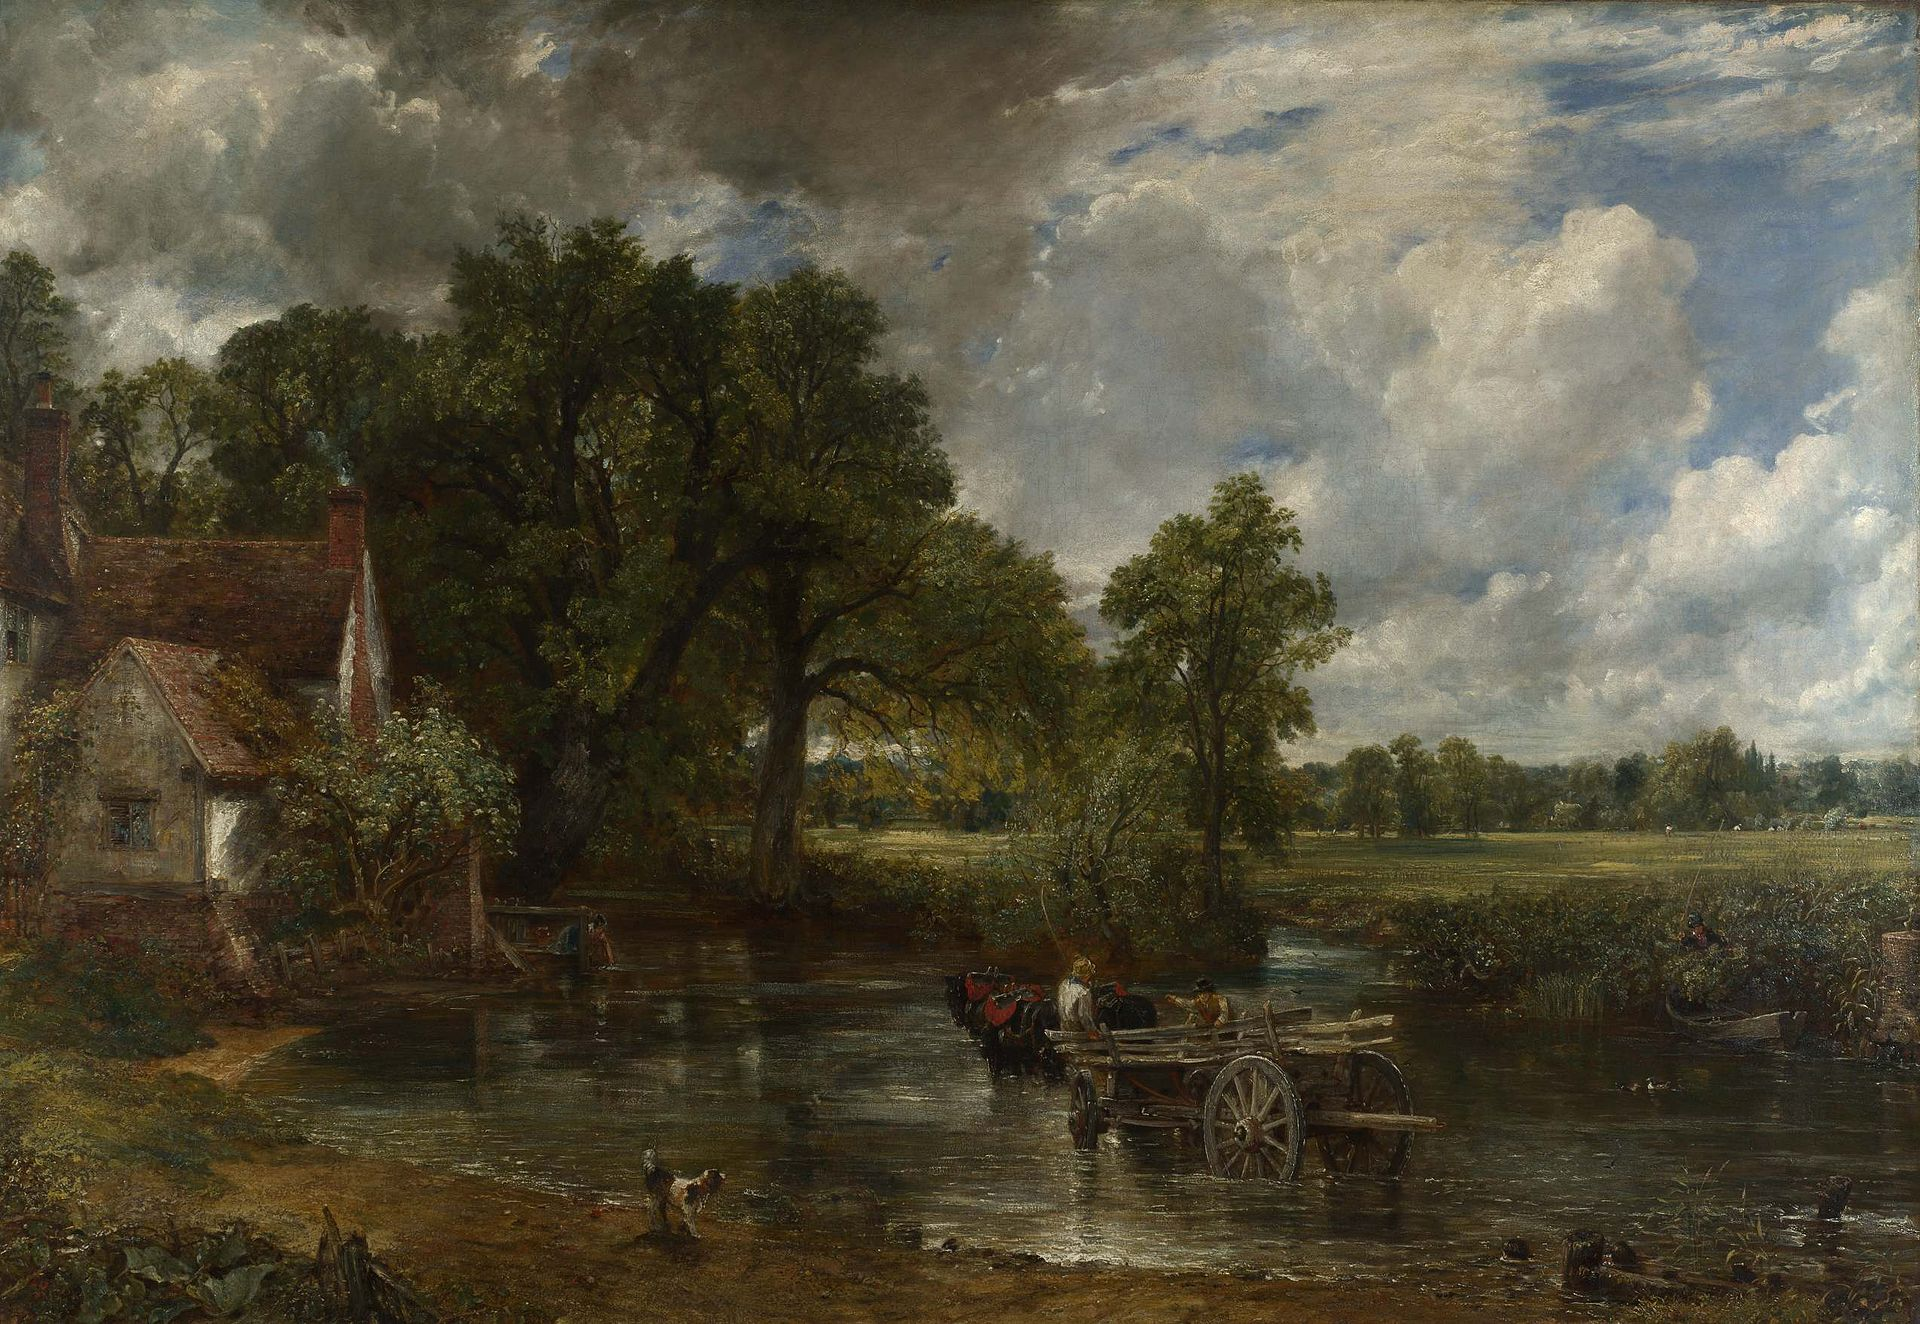 Great Britons John Constable The Landscape Painter Who Created A England Thoughts On British Electrical Outlets Anglotopianet Hay Wain His Most Famous Painting